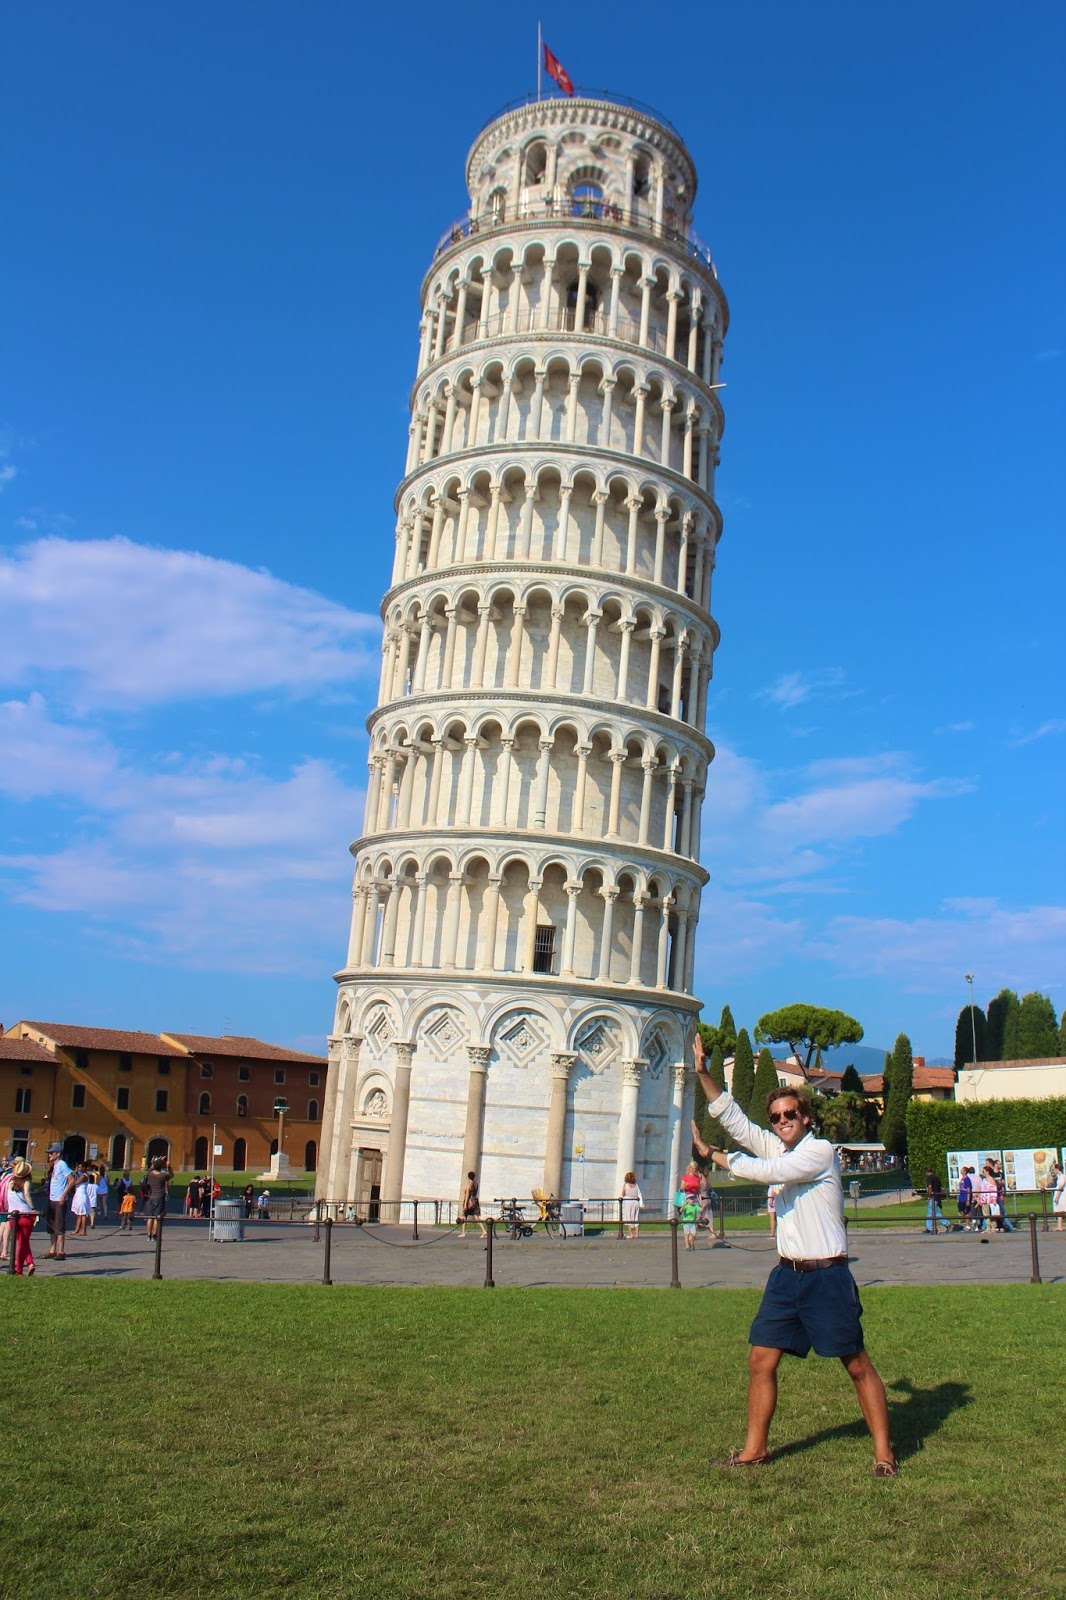 Nemo S Great Adventure The Leaning Tower Pisa Italy